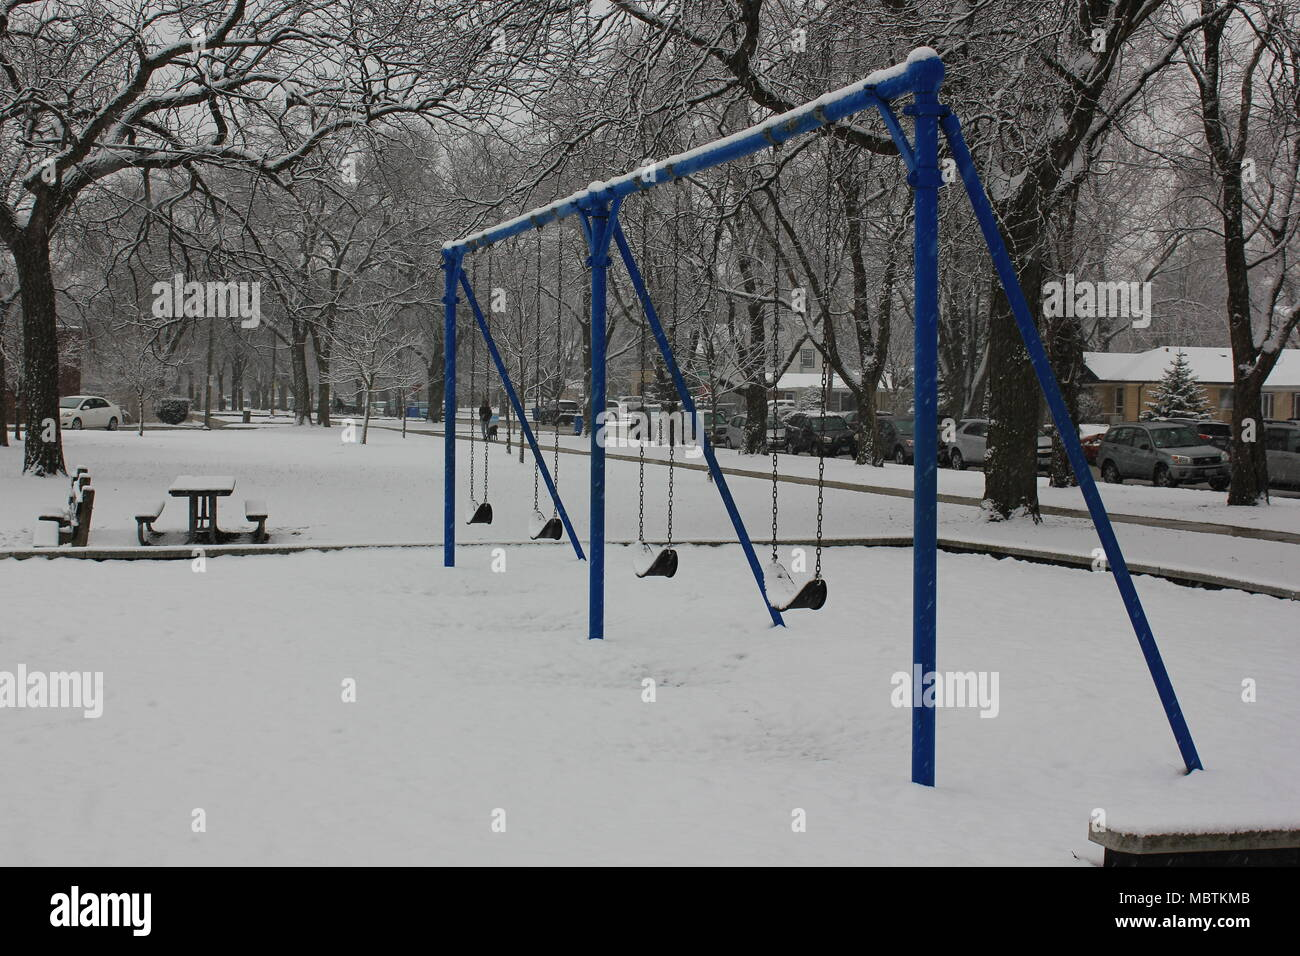 Chicago's Norwood Park just after snowfall in a cloudy day. - Stock Image